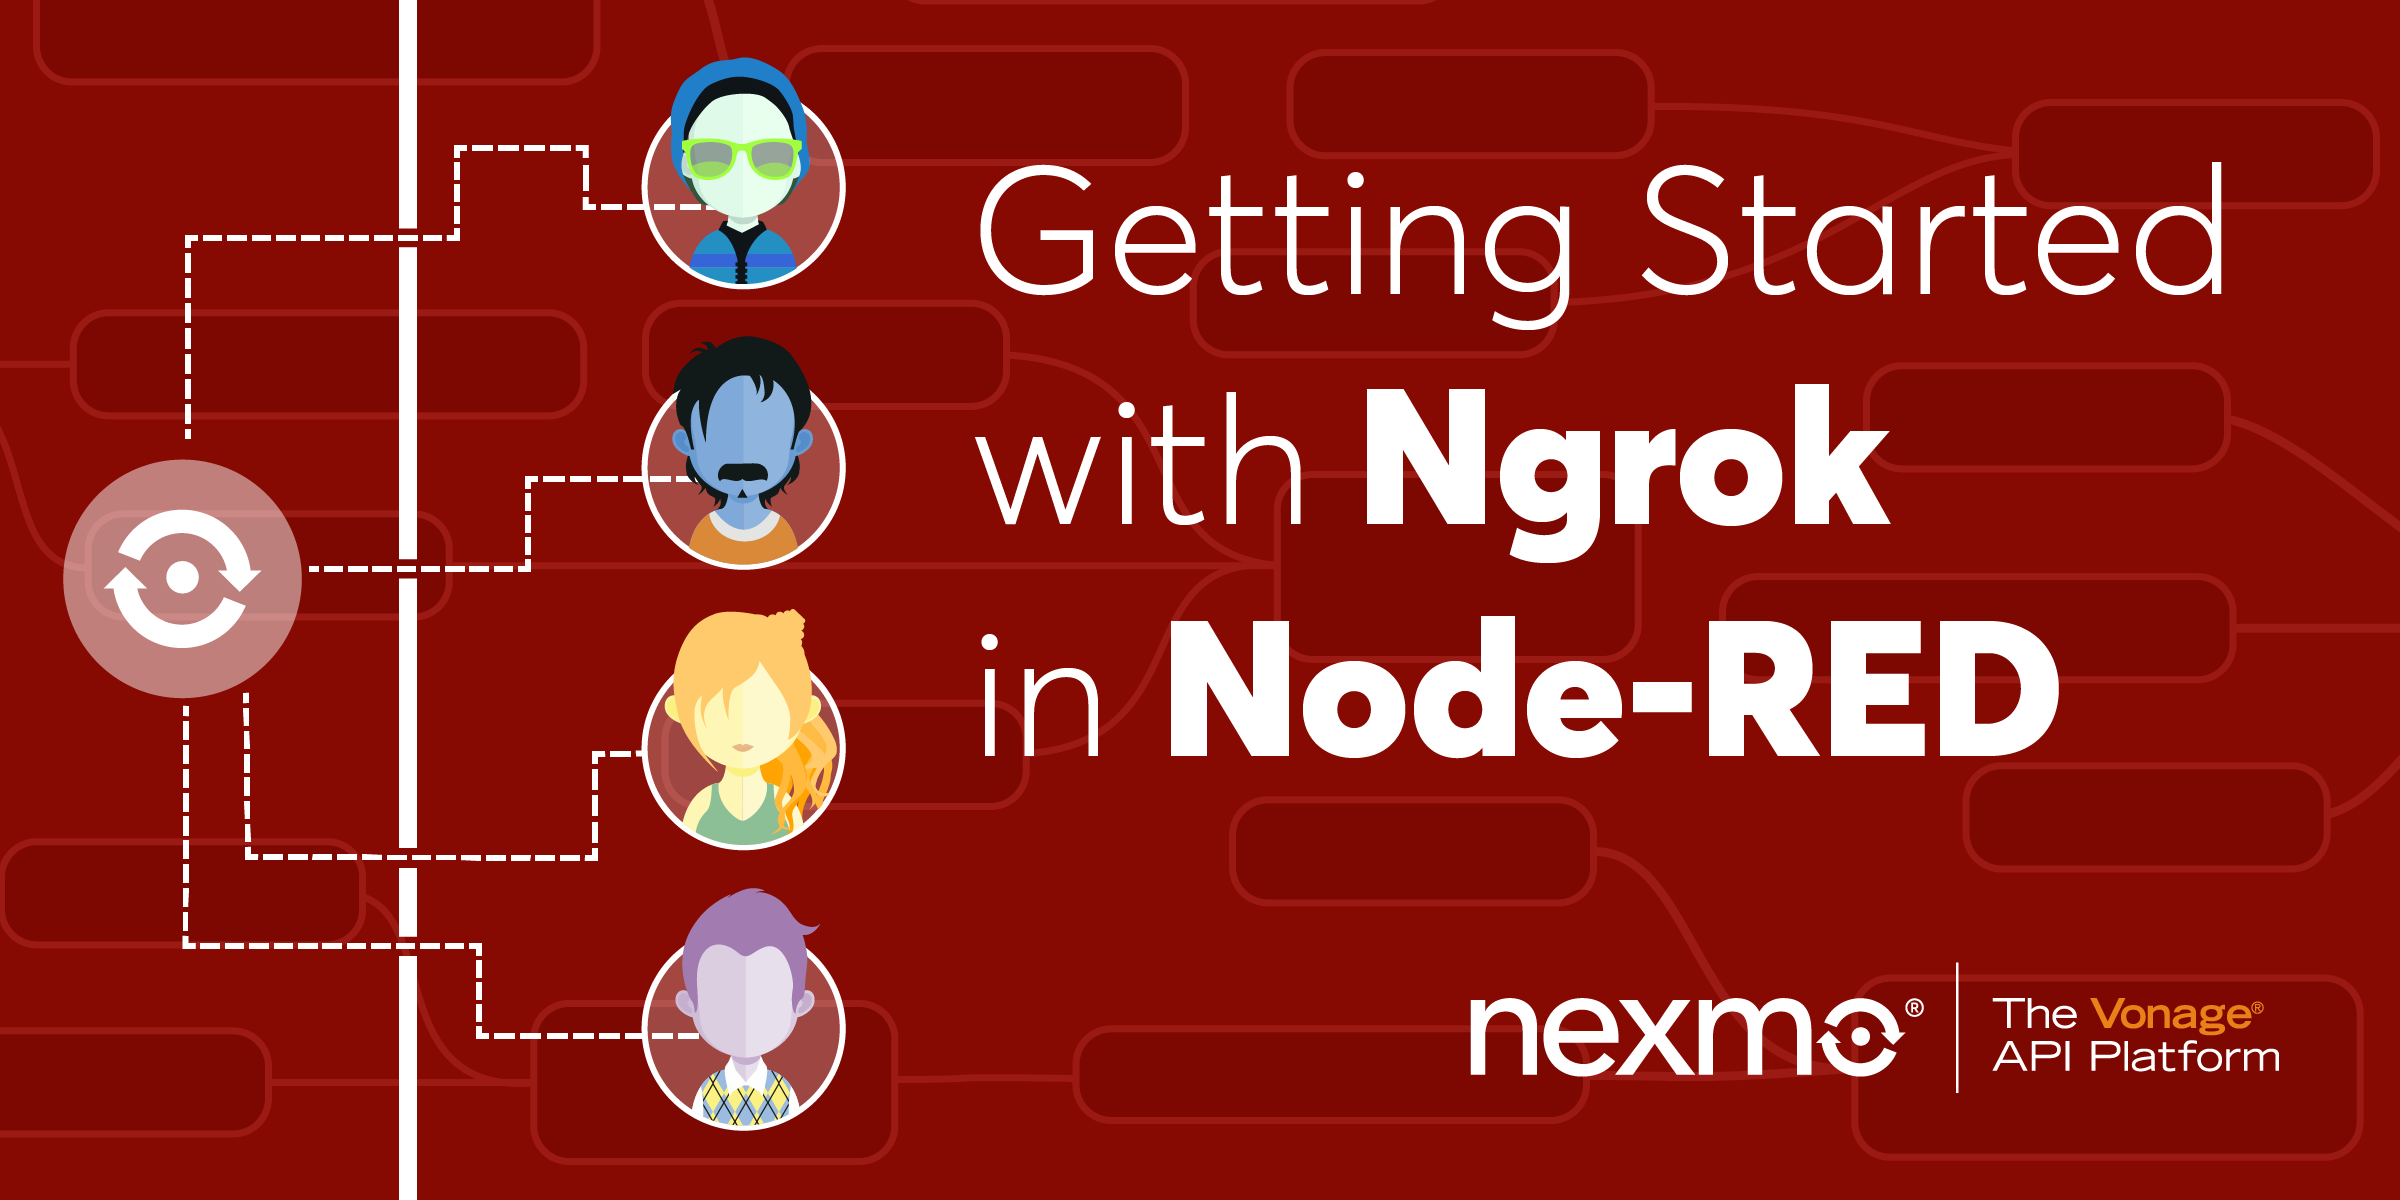 Getting Started with Ngrok in Node-RED